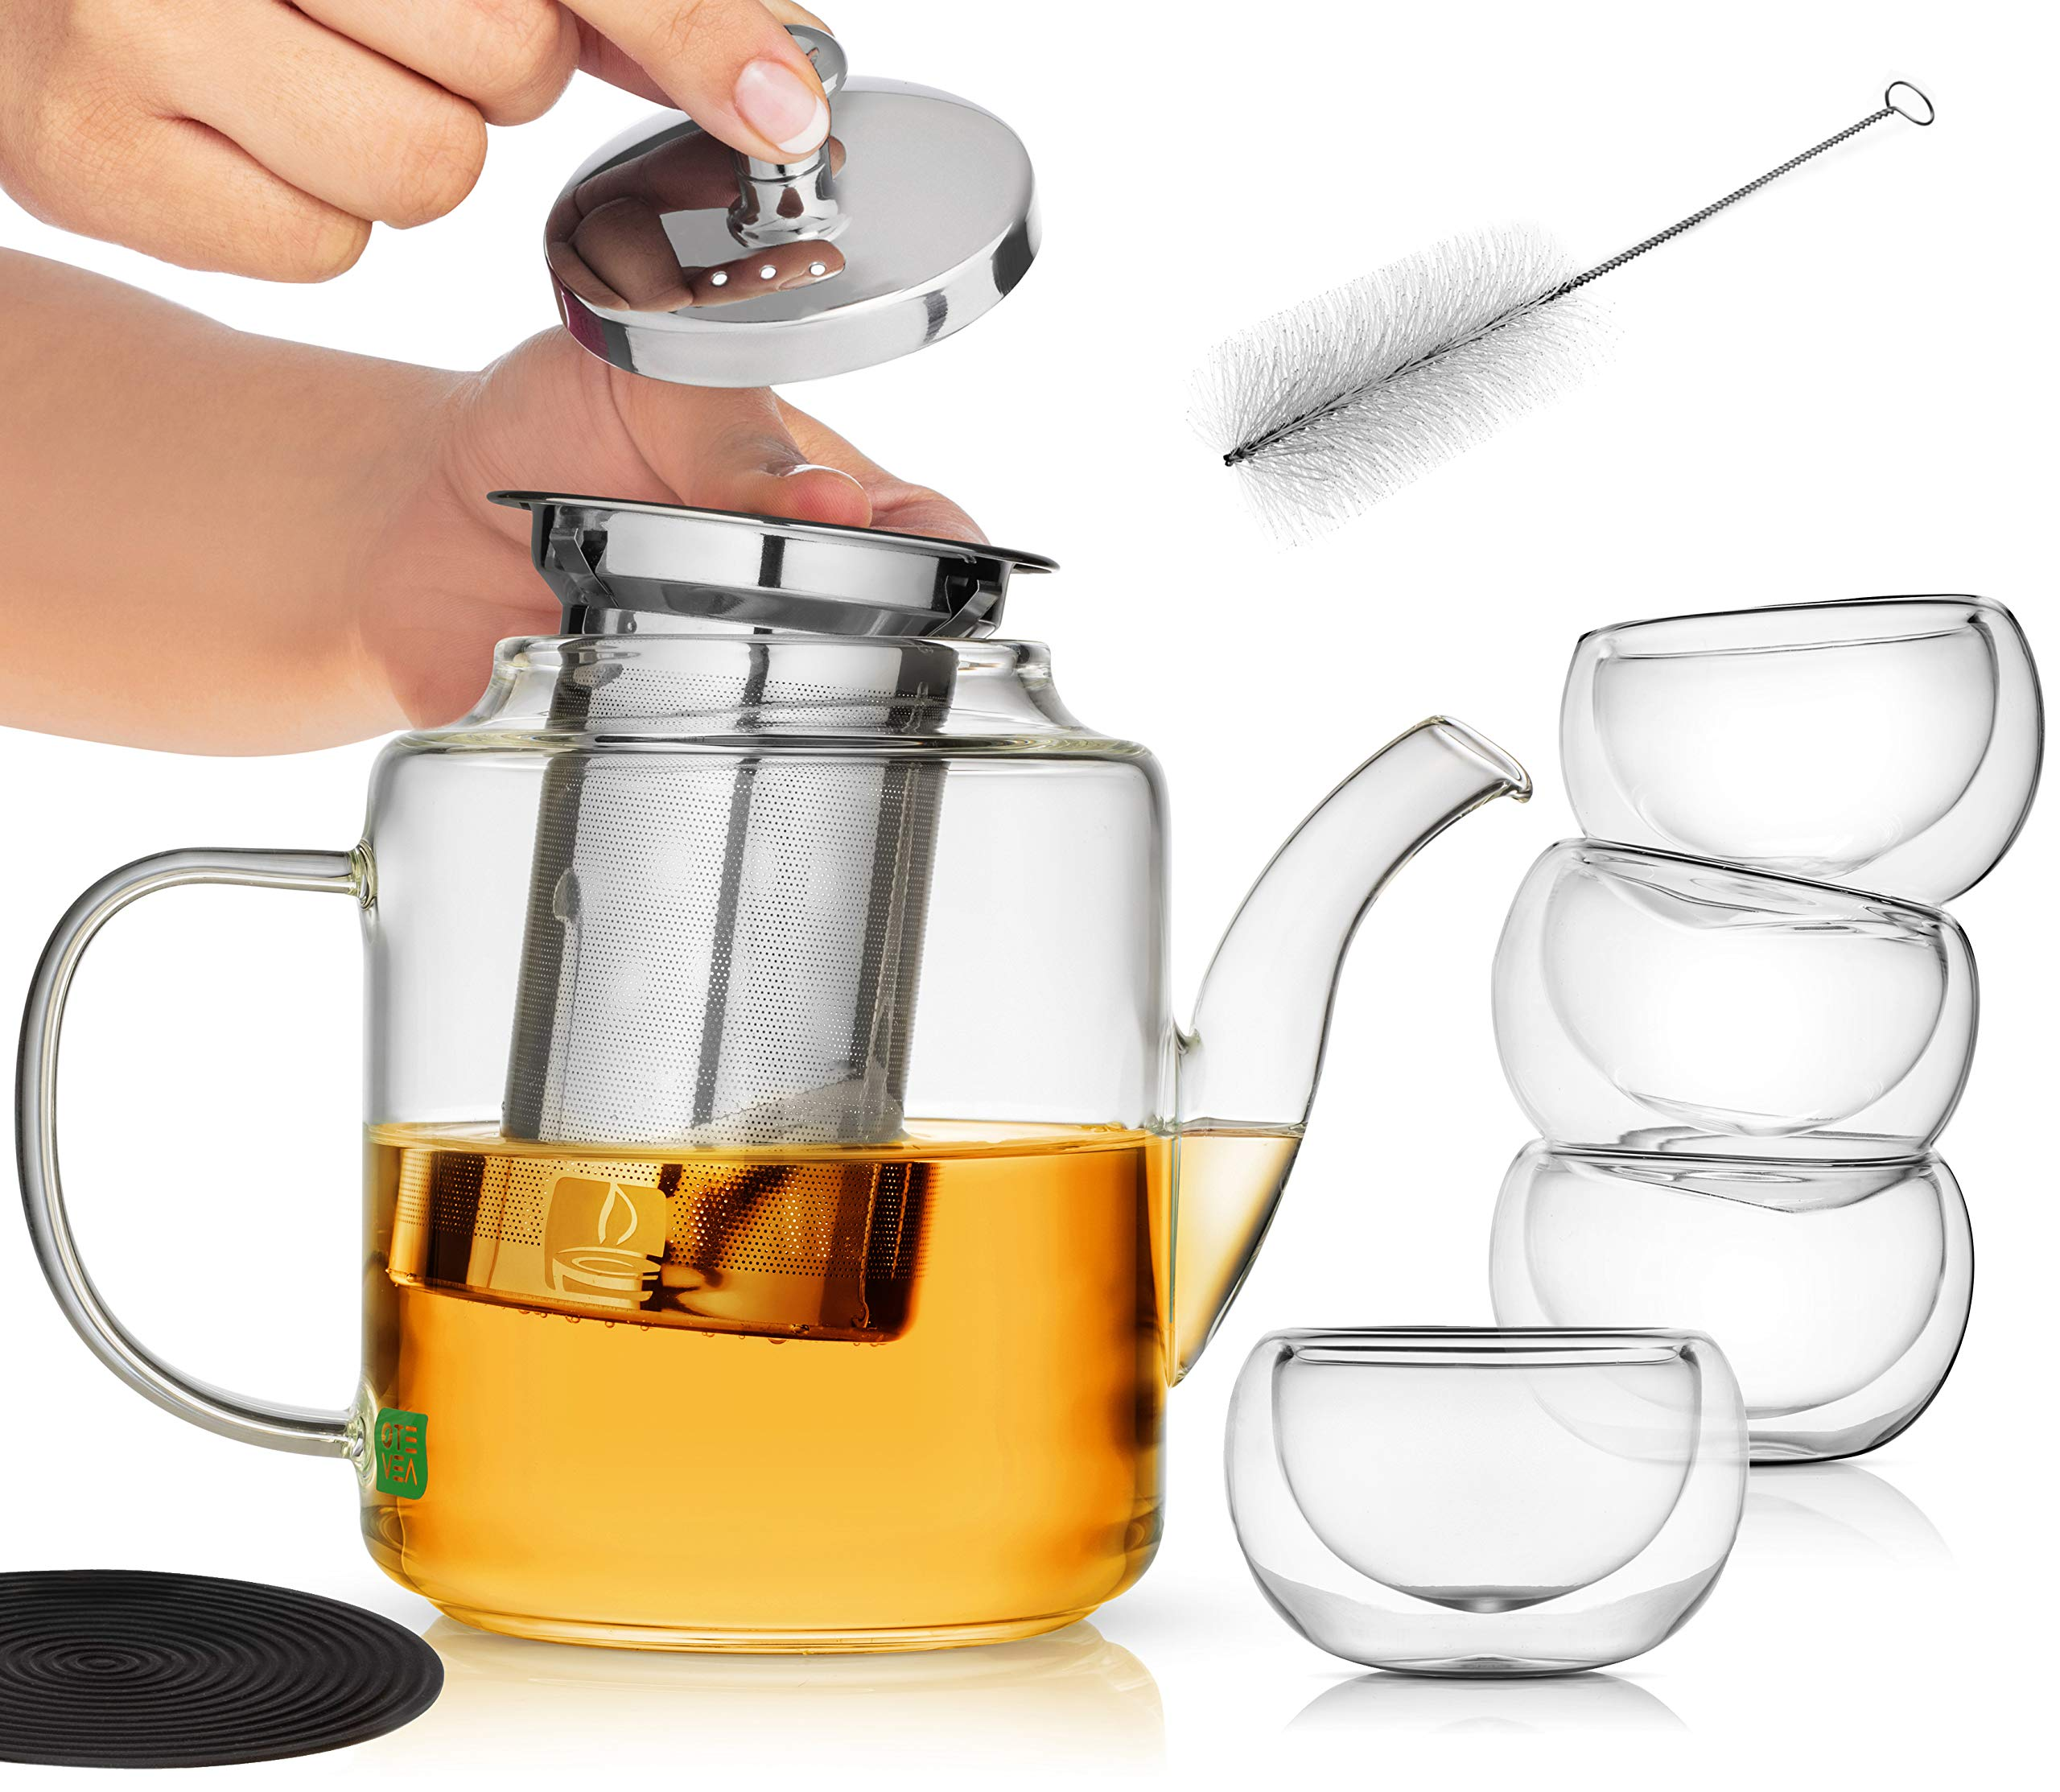 Glass Teapot Set with Infuser for Loose Tea | Stove Top Safe Borosilicate Clear Glass Tea Pot with 4 Small Tea Cups, Silicone Trivet, Cleaning Brush | the Perfect Tea Set for Gift or Entertaining